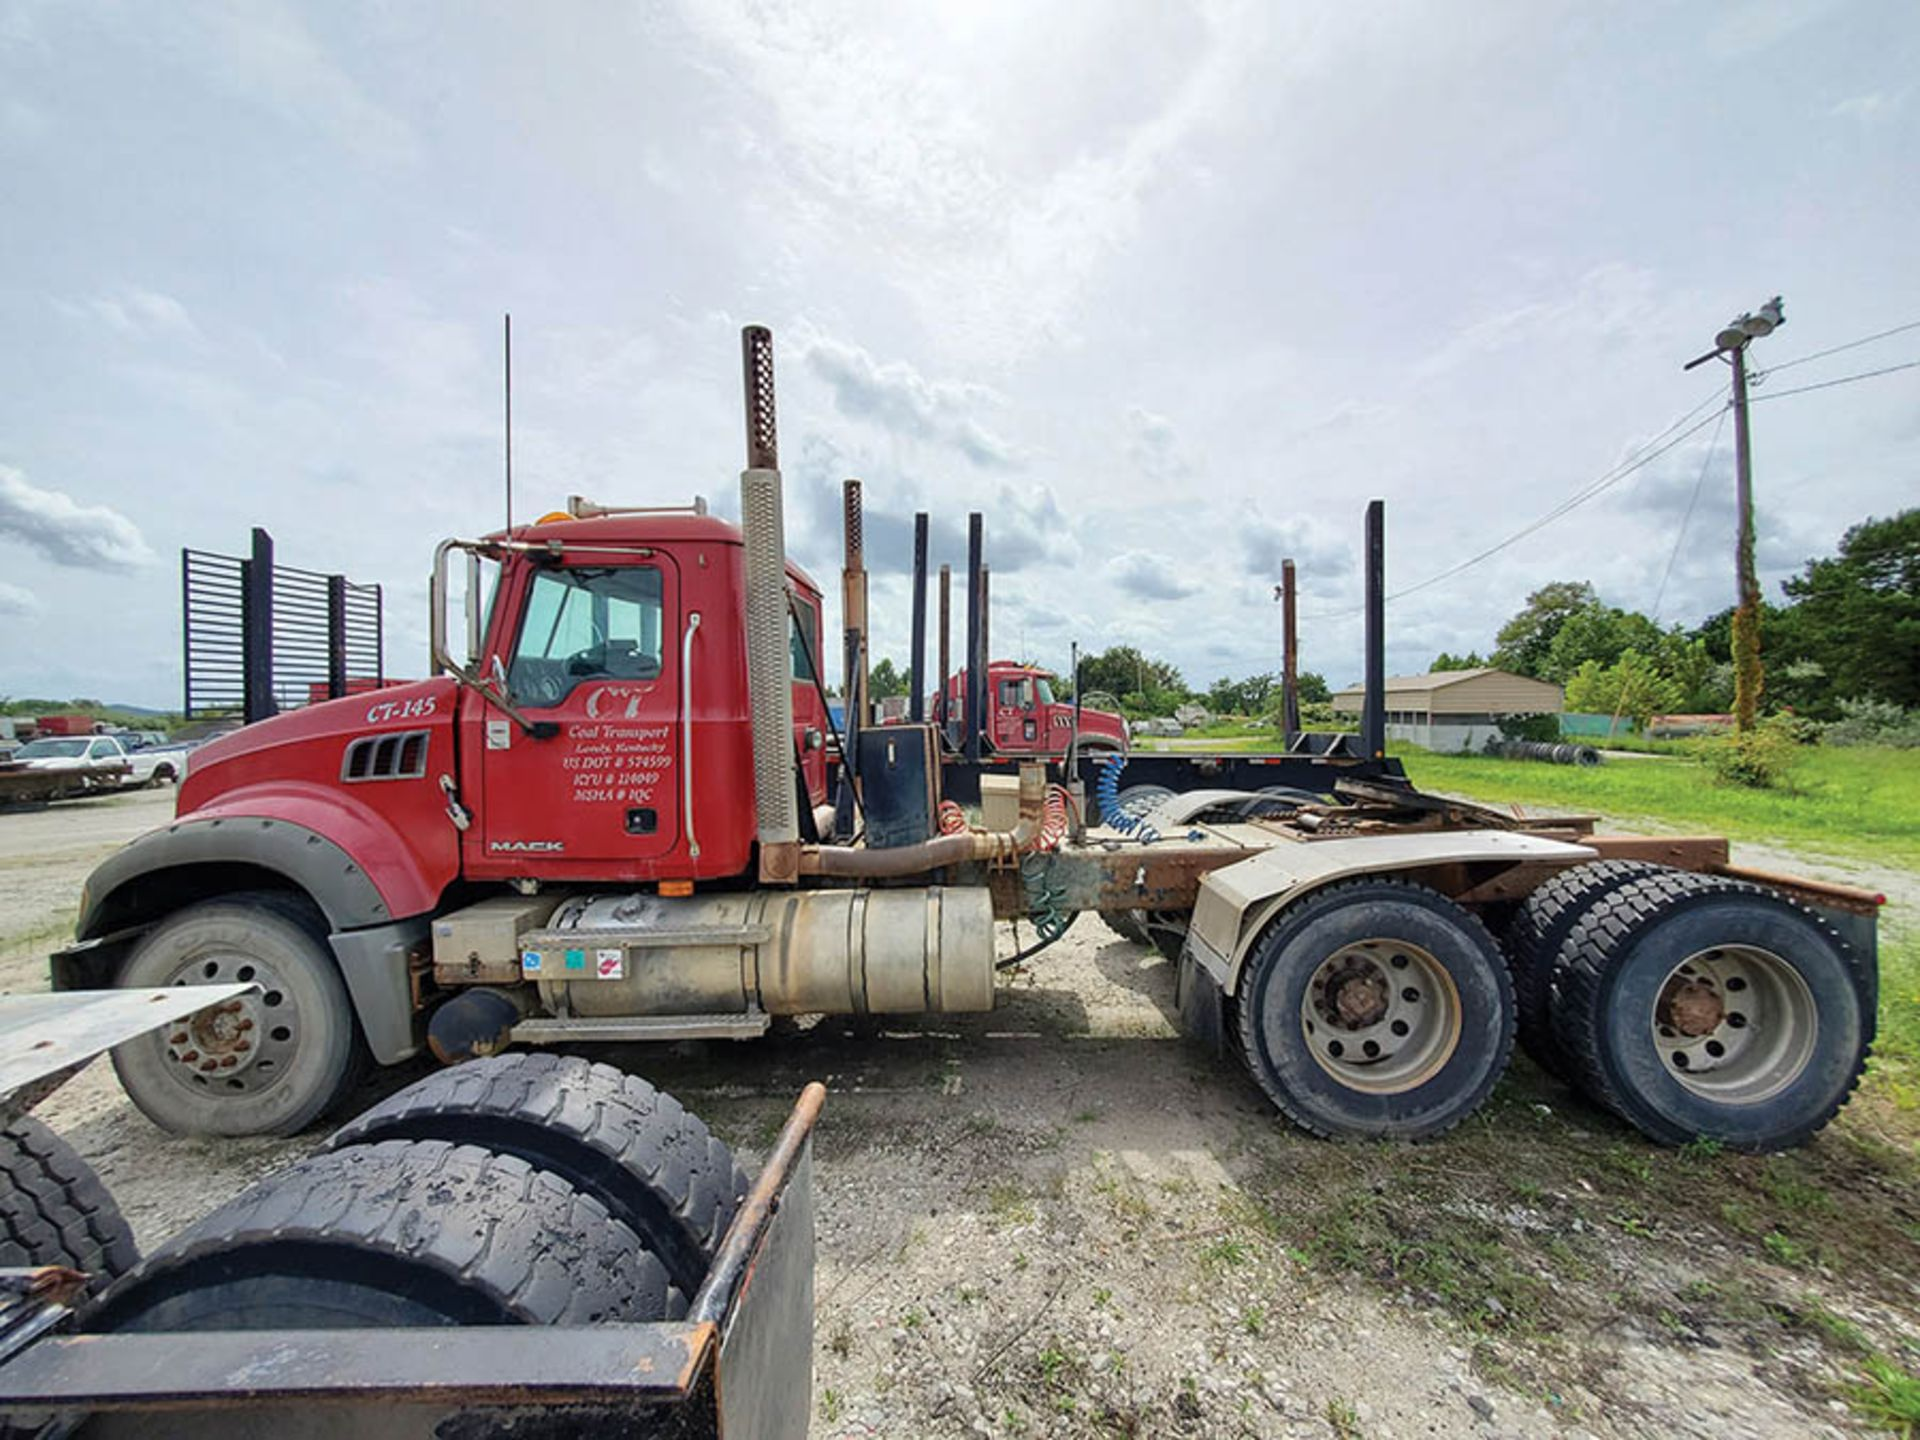 Lot 2 - 2009 MACK GU713 T/A DAY CAB TRACTOR, MAXITORQUE 18 SPEED TRANS., WET LINES MACK INLINE SIX DIESEL